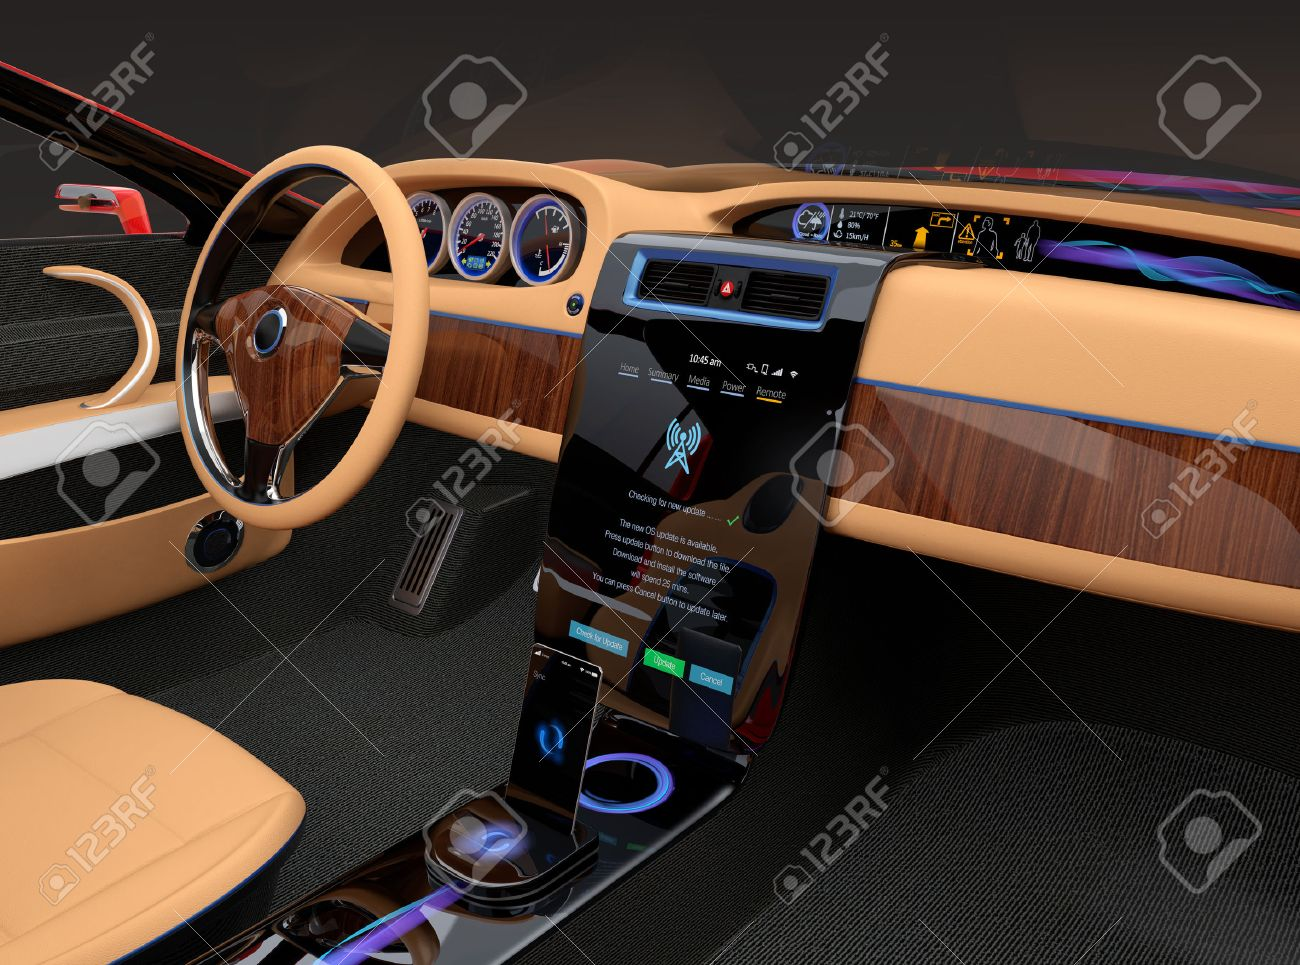 Car Dashboard Icons Stock Photos Pictures Royalty Free Car - Car image sign of dashboardcar dashboard icons stock photospictures royalty free car